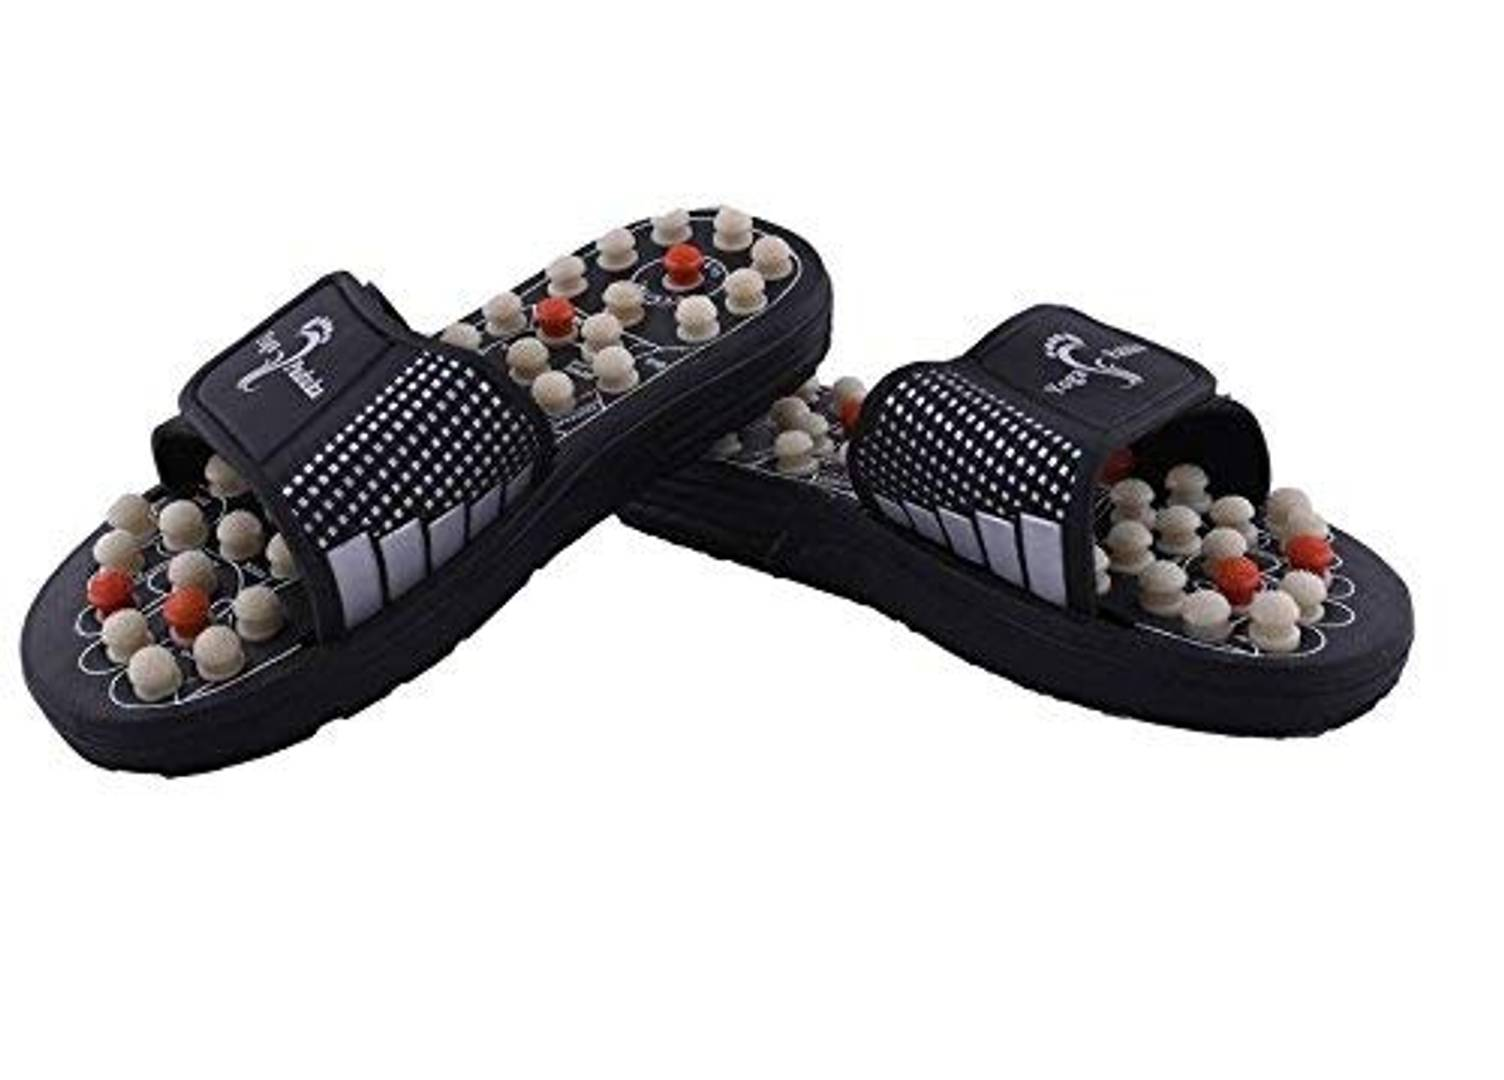 Acupressure Slippers Therapeutic Acupoint Massager